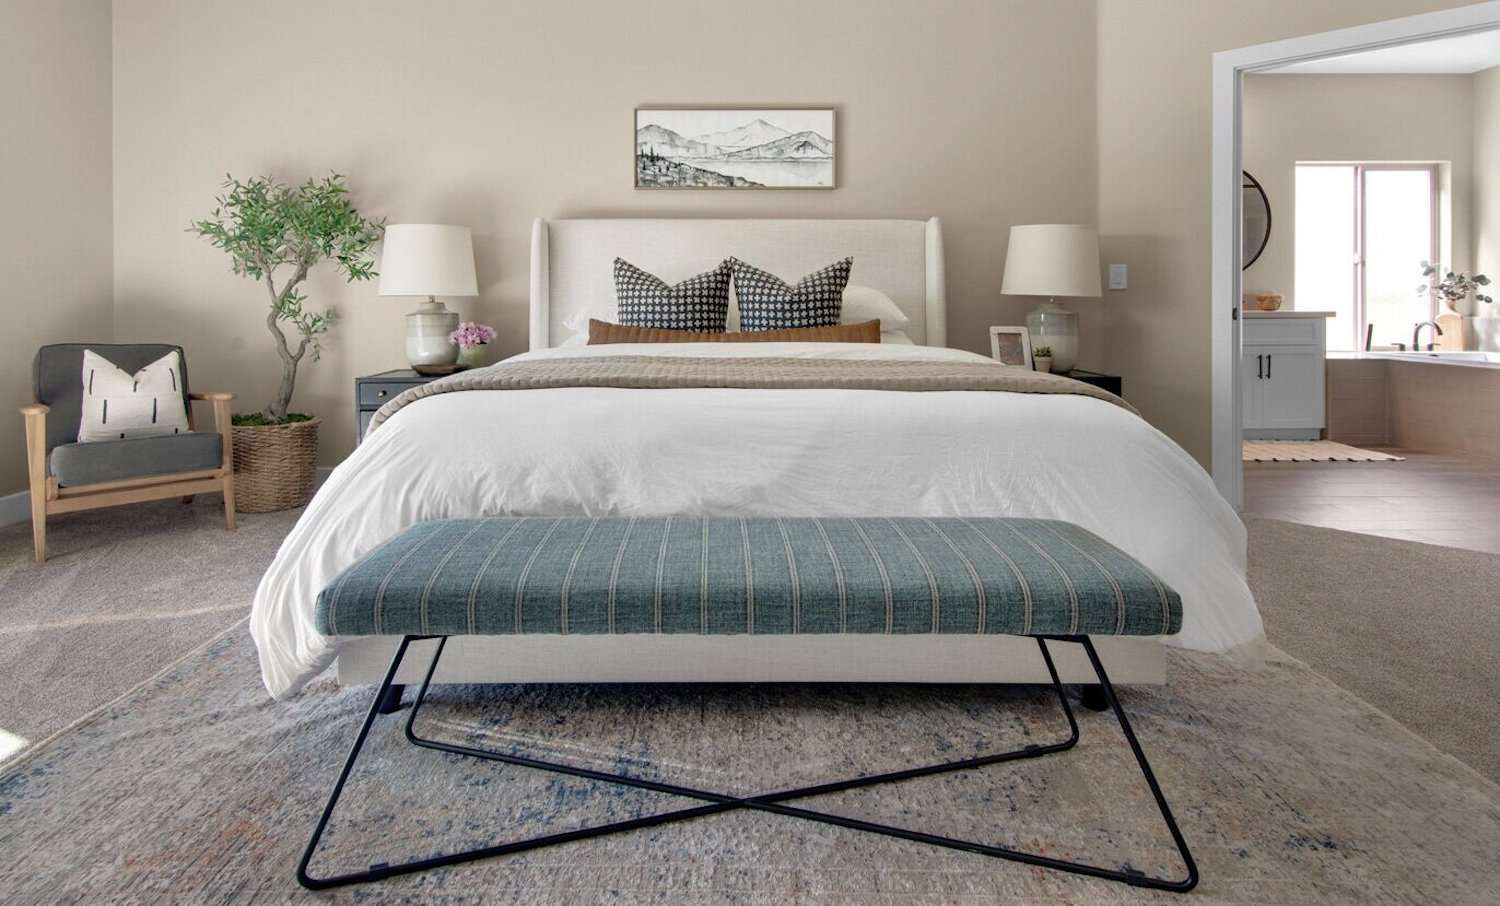 California cool bedroom with tree, neutral vibes